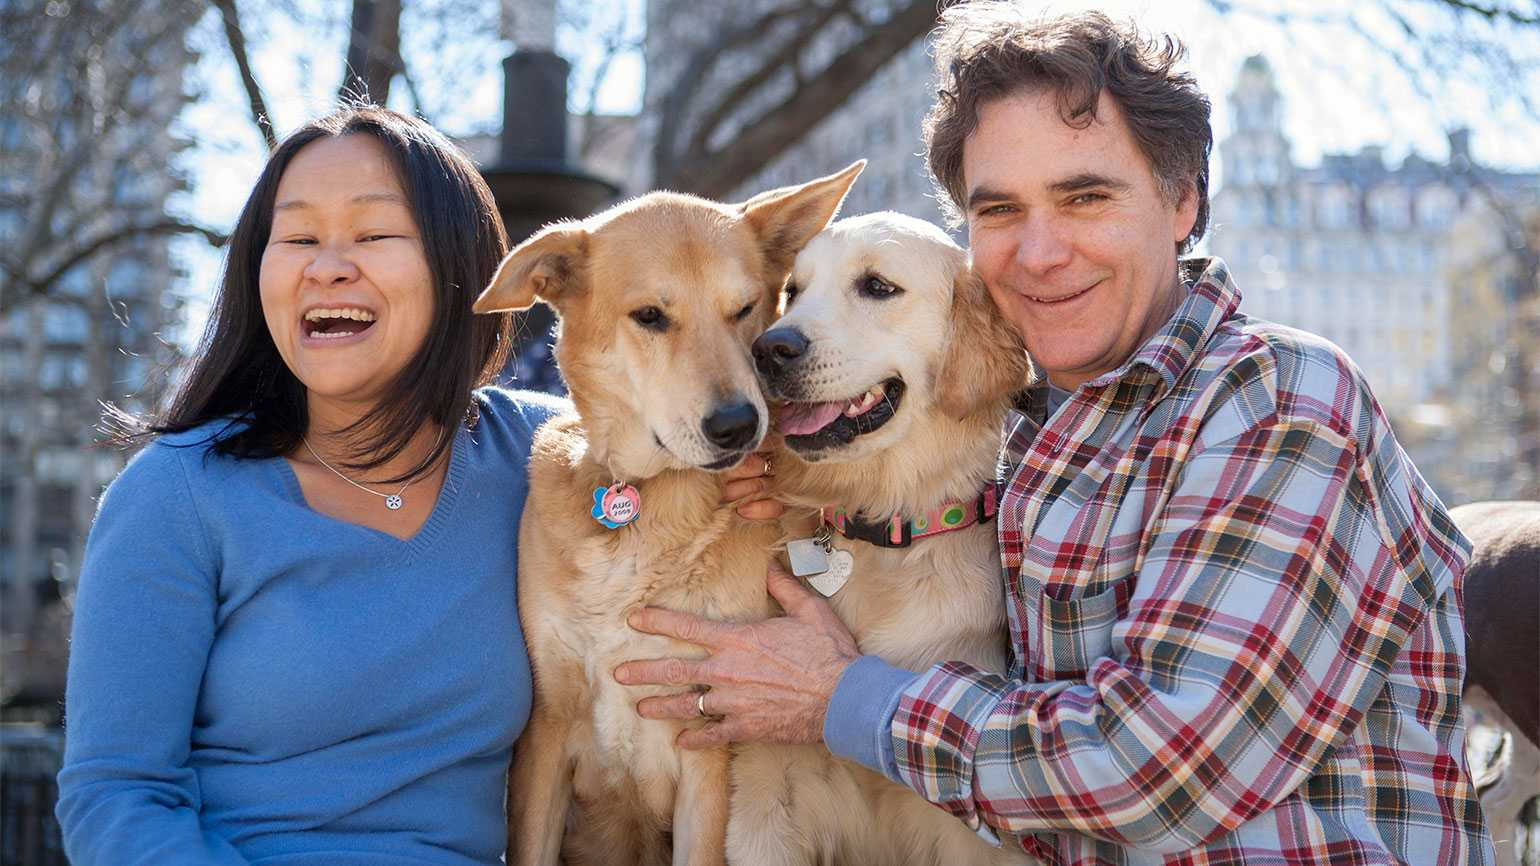 Amy Wong, Winky, Millie and Edward Grinnan (l-r)